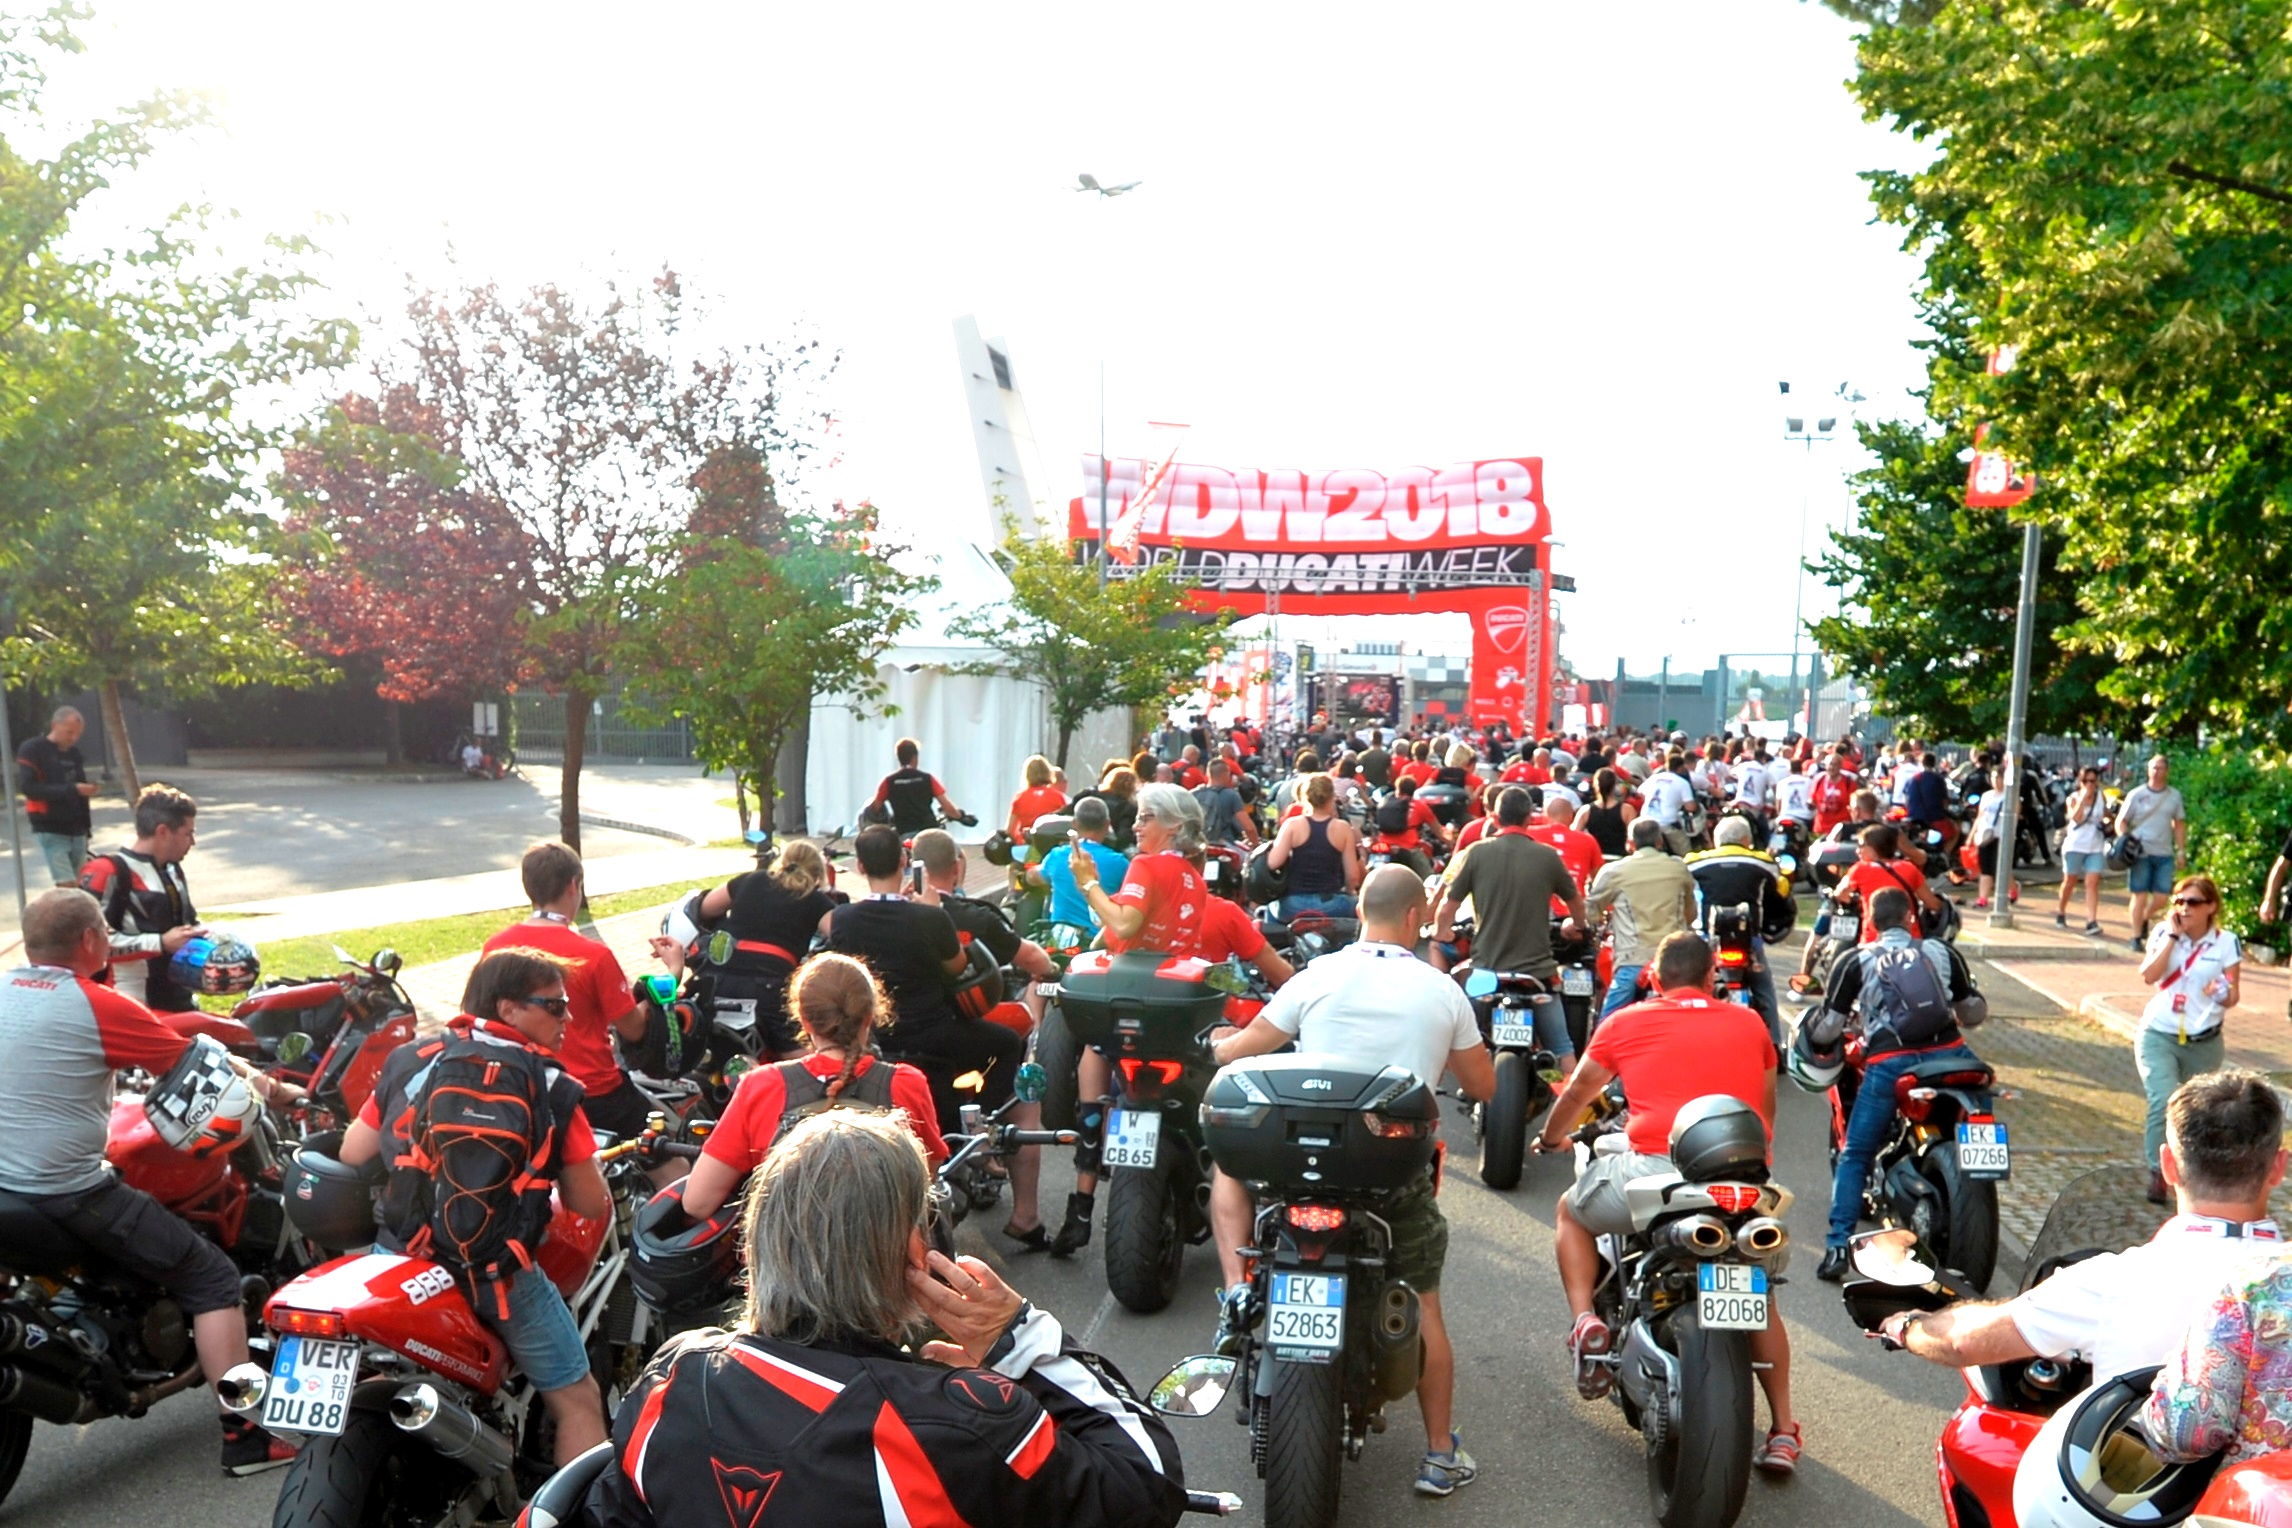 World Ducati Week 2018 Welcome